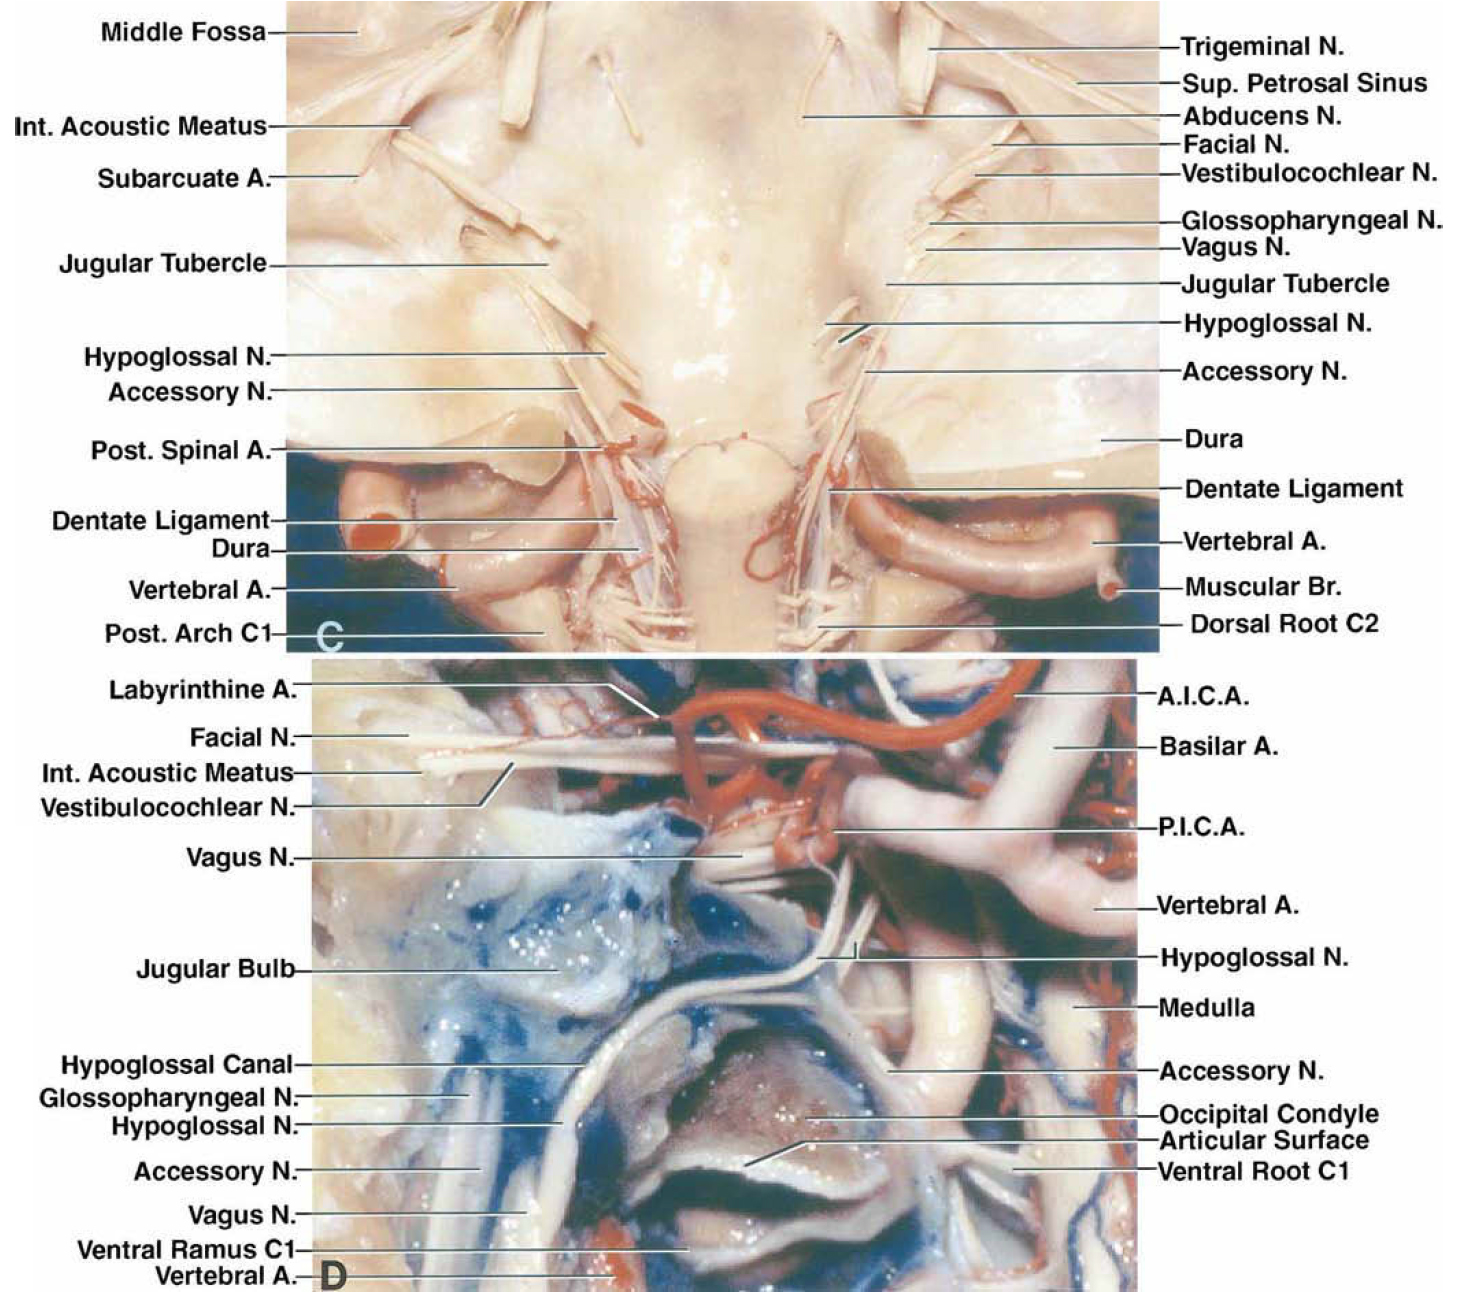 FIG. 5. C-D. C: Anterior surface of the posterior fossa following removal of the intradural segment of the VAs and basilar artery. The skull base in front of the brainstem forms a deep trough that may be easier to reach after removal of some of the lateral bone margin of the trough formed by the occipital condyle and supracondylar bone including all or part of the jugular tubercle. D: Left-sided anterior view of a skull section coronally at the level of the right occipital condyle and the hypoglossal canal. The superior facet of C-1 and the anterior wall of the jugular foramen, internal acoustic meatus, and hypoglossal canal have been removed. The rootlets of the hypoglossal nerve originate between the medullary pyramid and the inferior olive and course behind the VA. The hypoglossal rootlets usually join to form two rootlets (superior and inferior) that enter the hypoglossal canal as separate bundles, but commonly fuse before exiting the hypoglossal canal. The nerve, after exiting the canal, courses in the interval between the ICA and the IJV and posterior to the glossopharyngeal and vagus nerves. The ventral root of C-1 penetrates the dura and hugs the lower margin of the VA as it crosses the posterior arch of the atlas. The glossopharyngeal, vagus, and accessory nerves penetrate the dura on the medial side of the jugular bulb. The PICA passes backward between the upper and lower hypoglossal rootlets. A. = artery; A.I.C.A. = anterior inferior cerebellar artery; Ant. = anterior; Br. = branch; Int. = internal; N. = nerve; Post. = posterior; Sup. = superior.